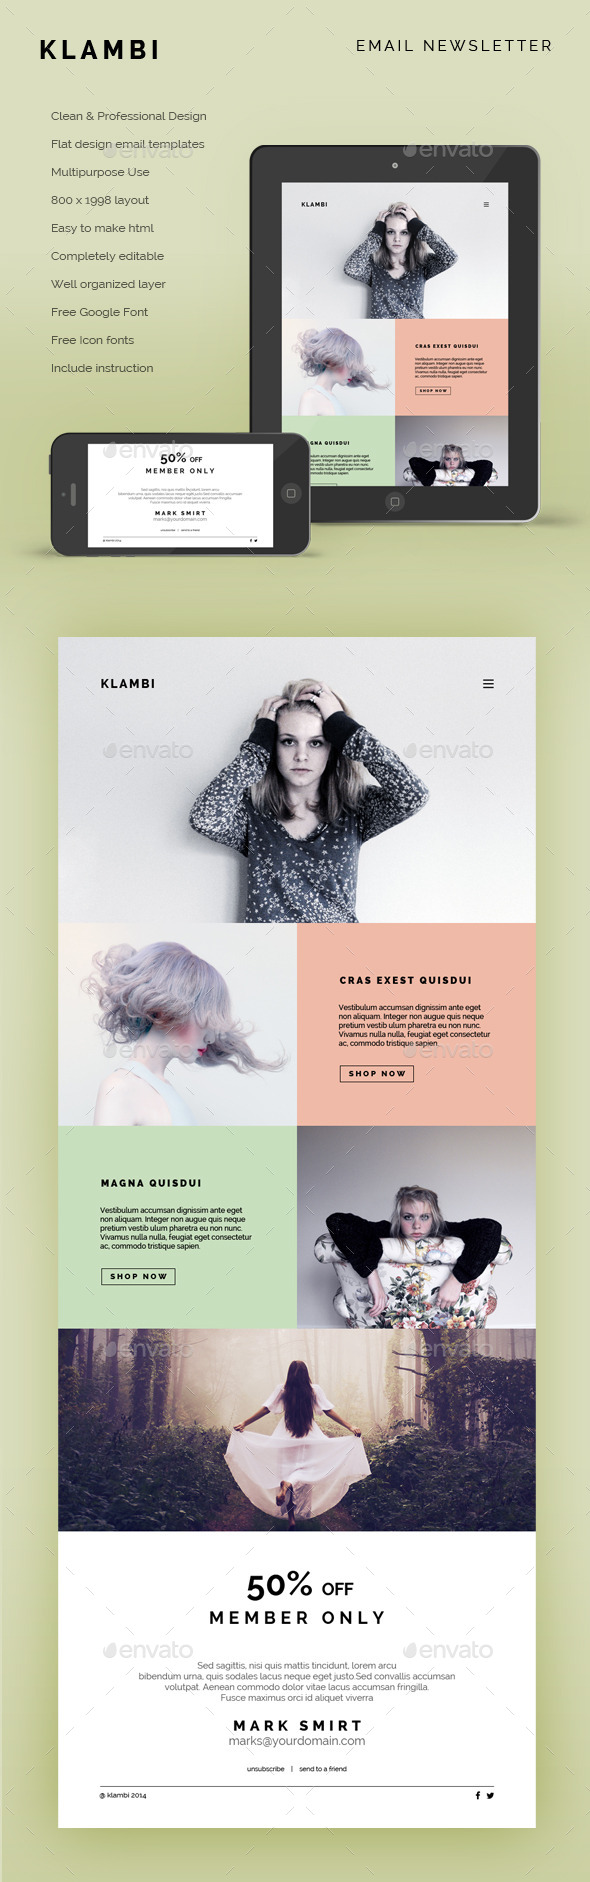 GraphicRiver Email Newsletter Klambi 9000294